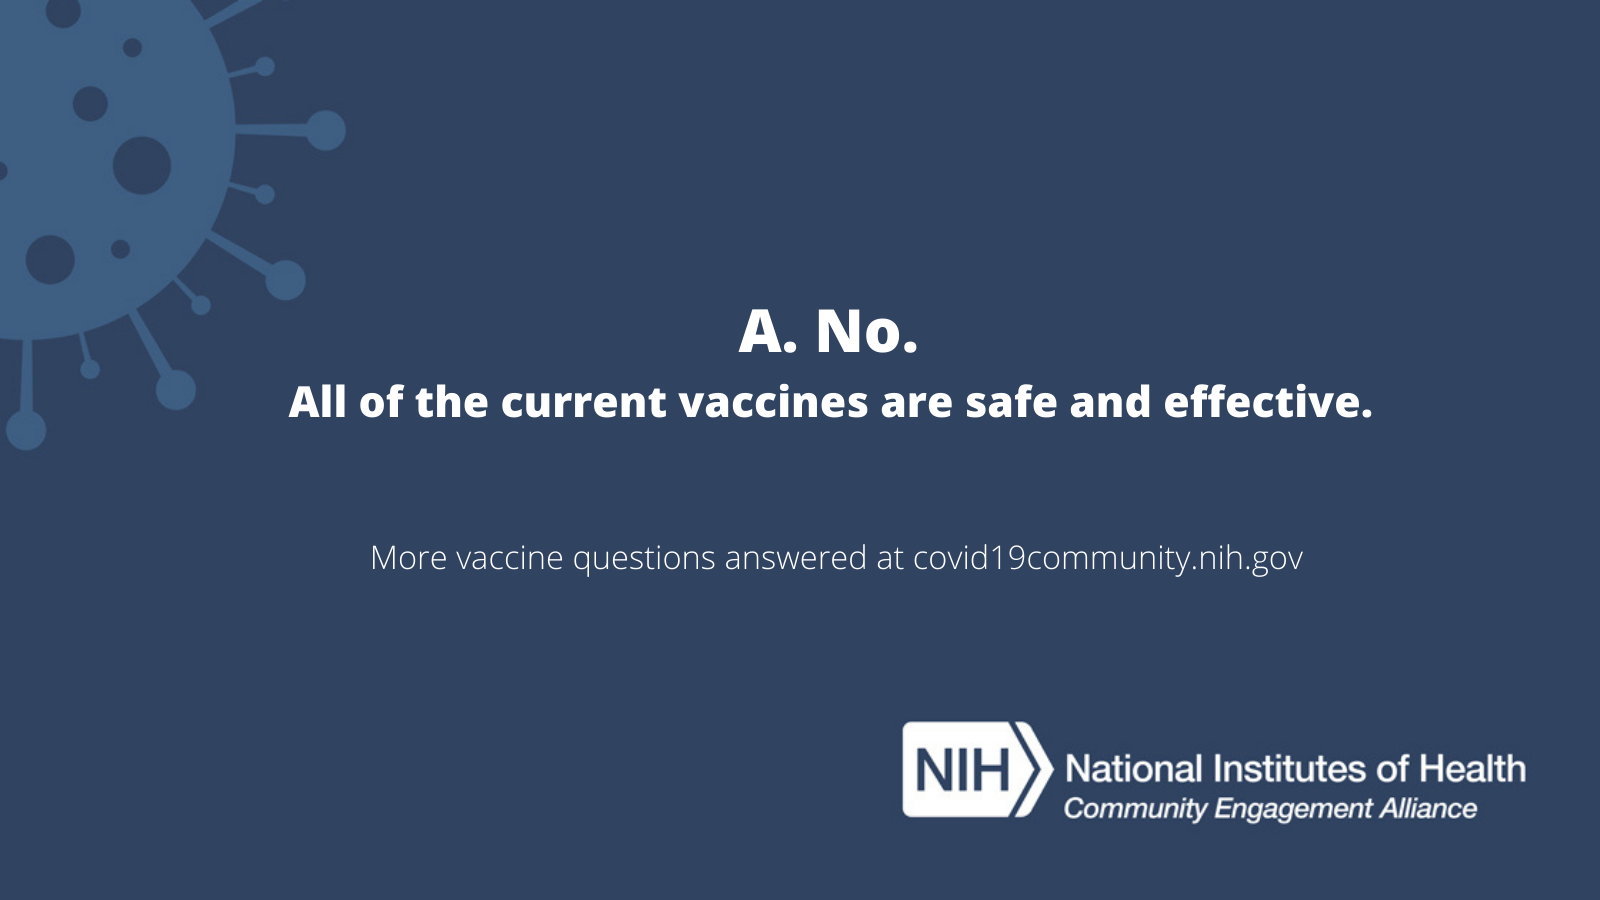 A: No. All of the current vaccines are safe and effective. More vaccine questions answered at covid19community.nih.gov